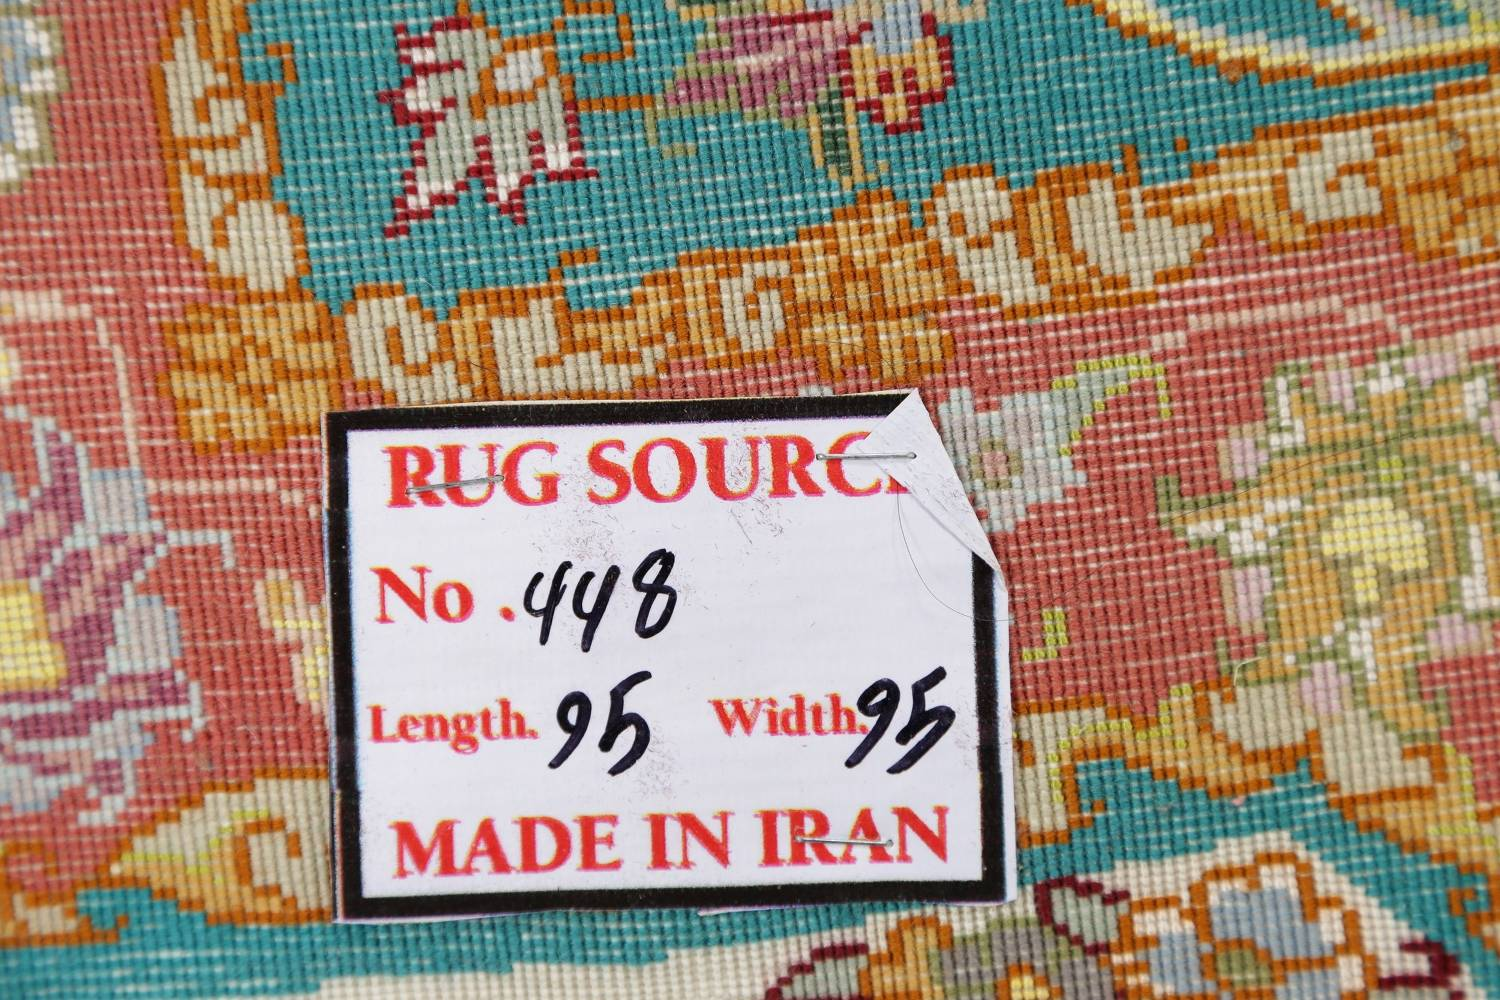 Floral Teal Tabriz Persian Hand-Knotted 3x3 Wool Silk Star Rug image 12